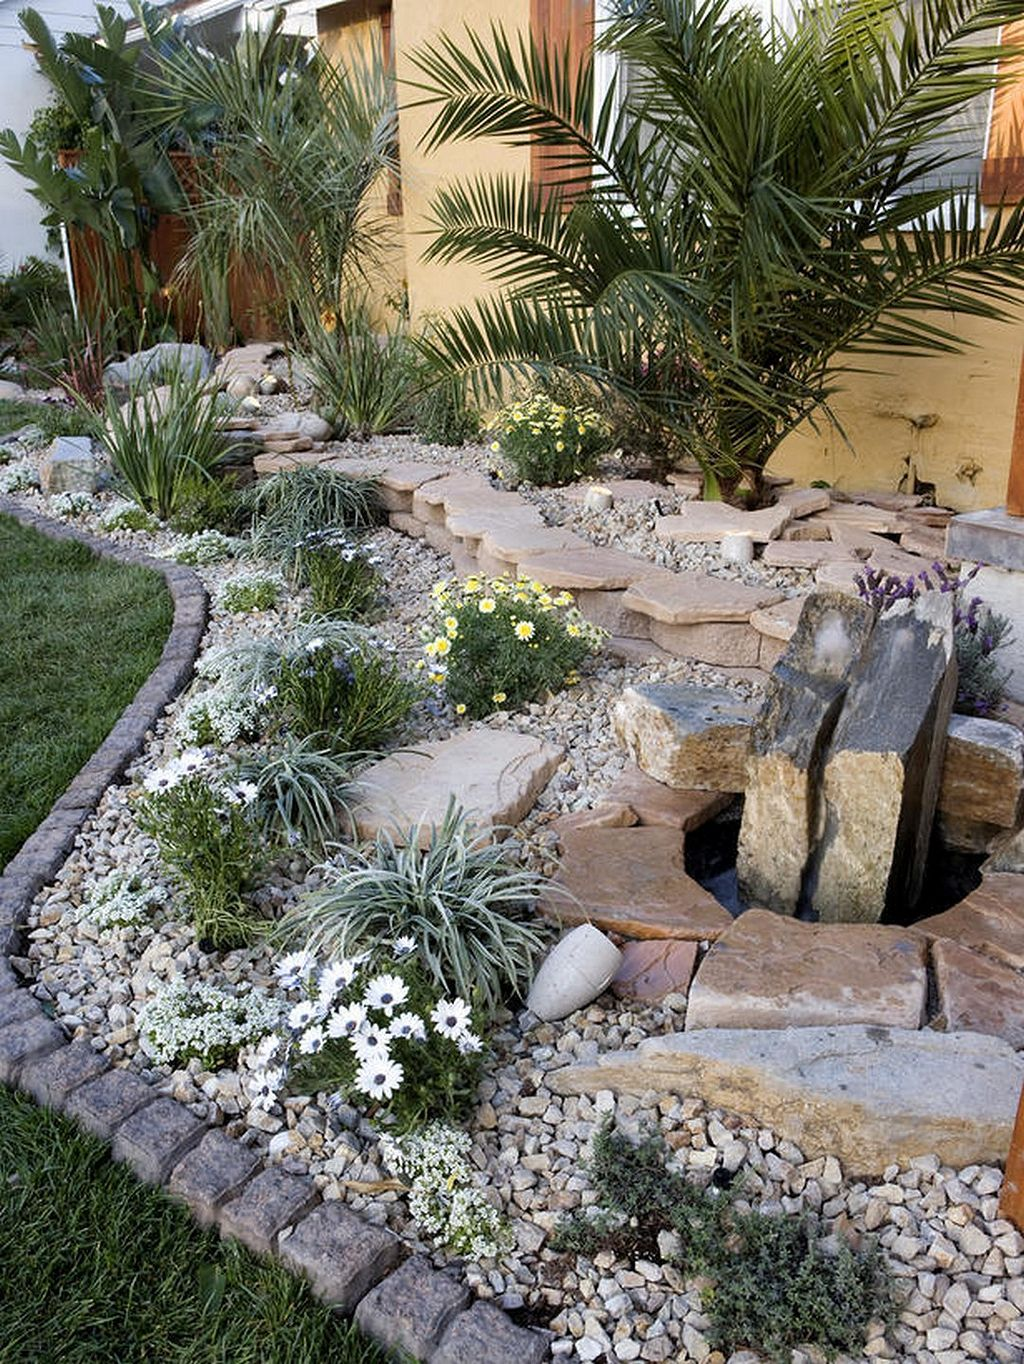 Steingarten Bilder Schön 50 Amazing Modern Rock Garden Ideas for Backyard